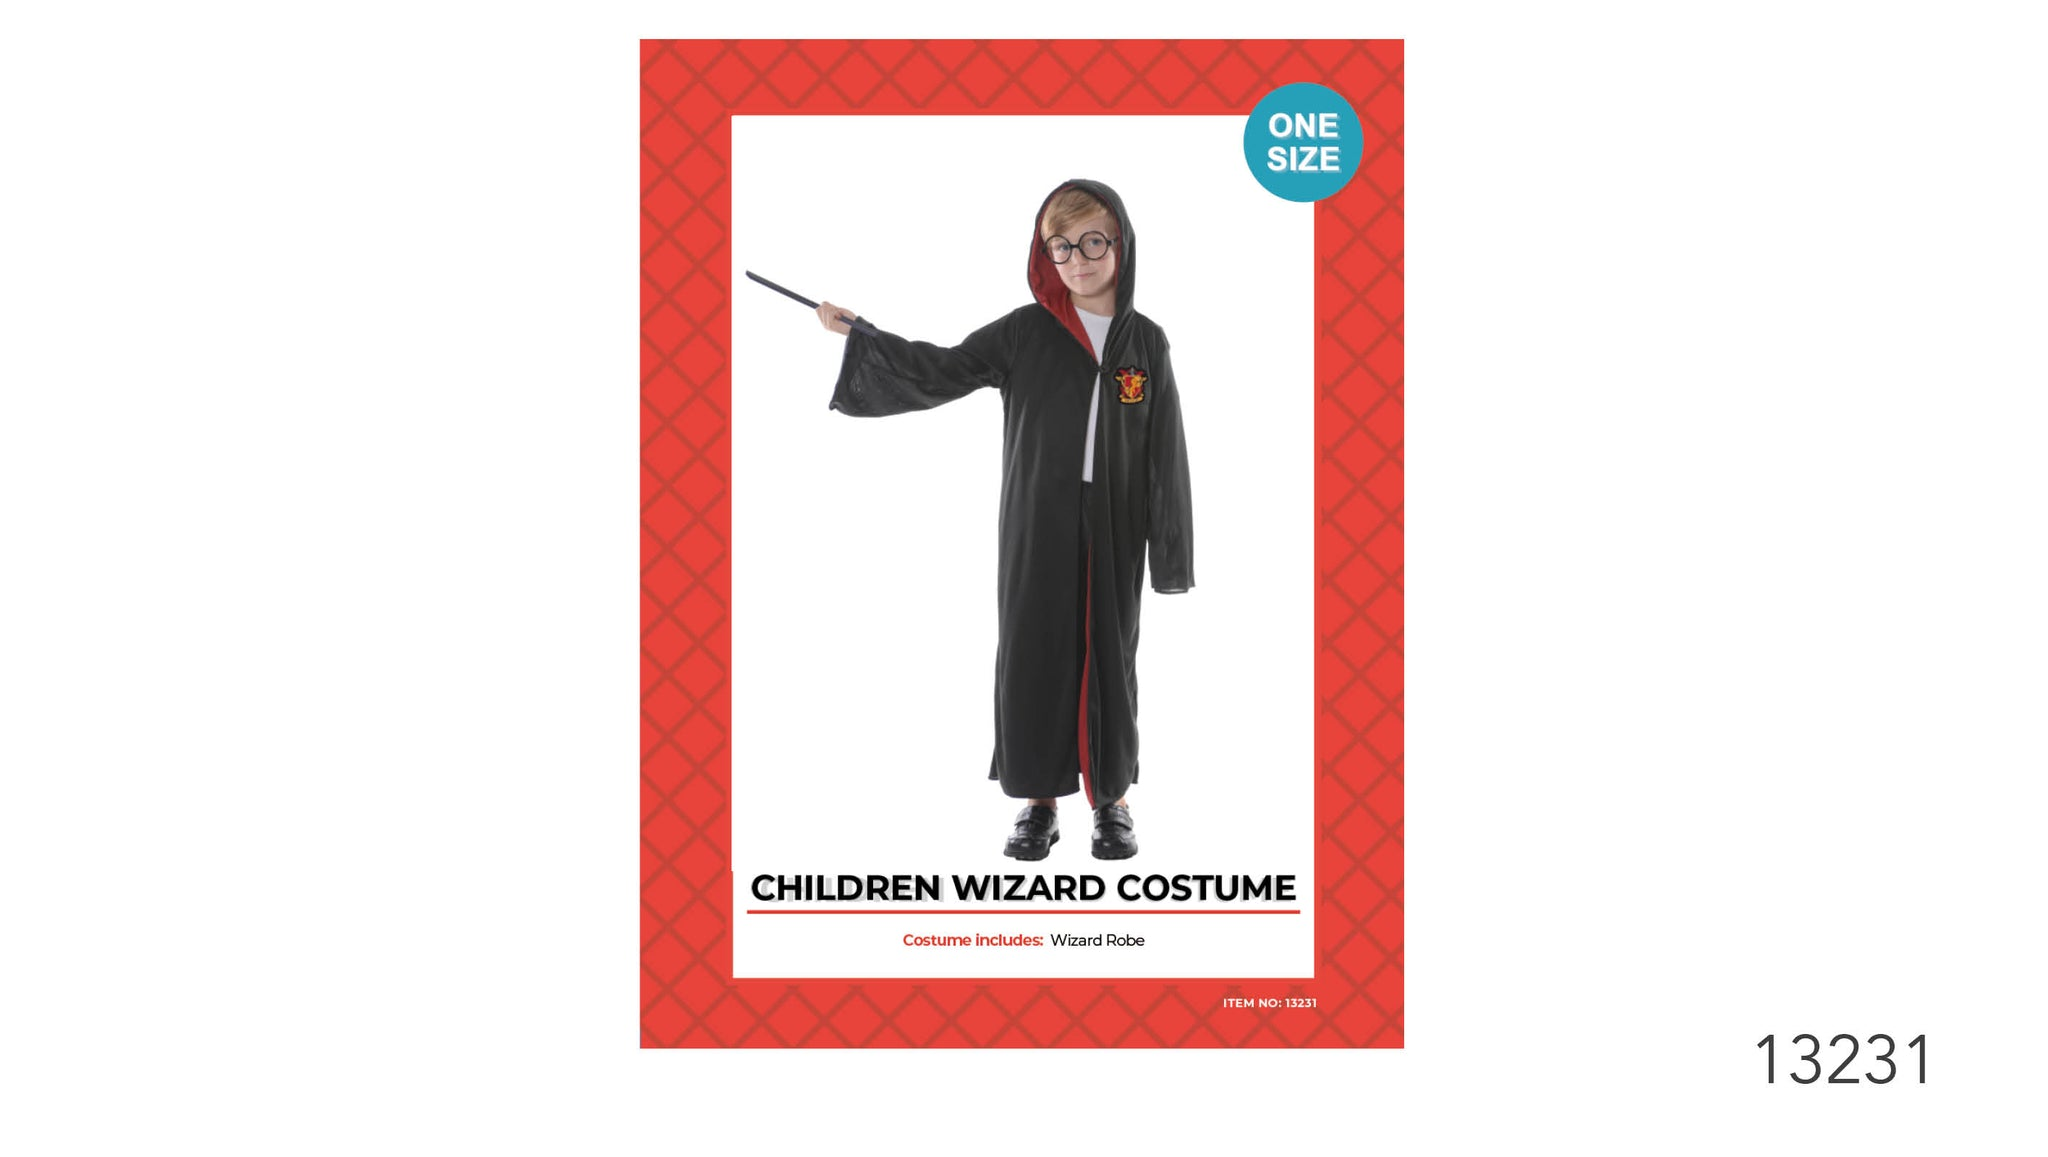 Costume - Wizard Costume Children